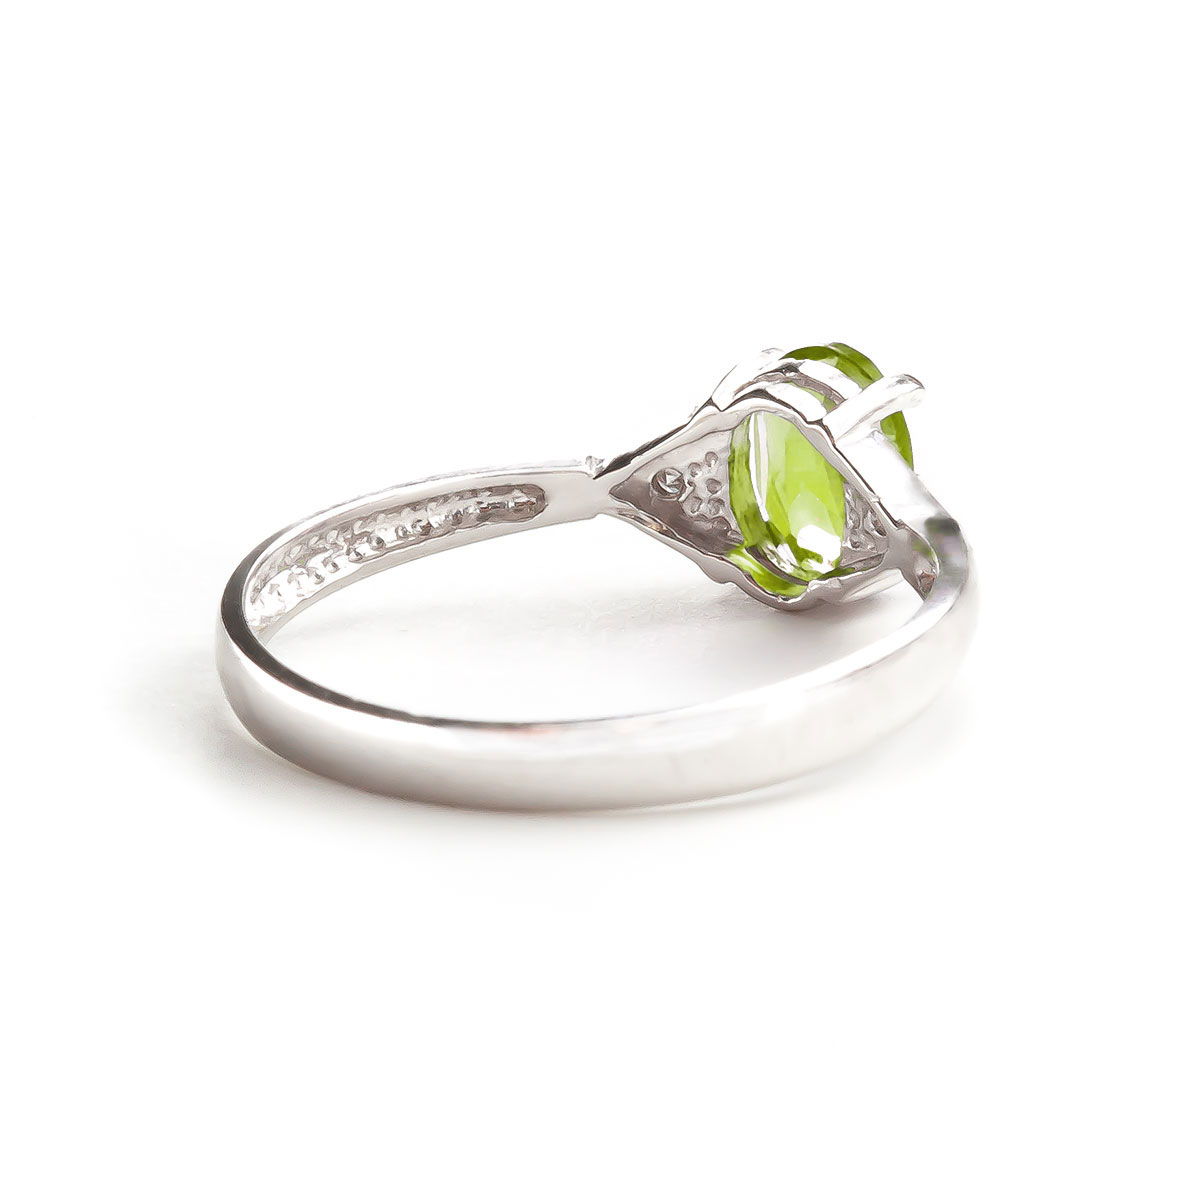 Peridot & Diamond Allure Ring in 9ct White Gold